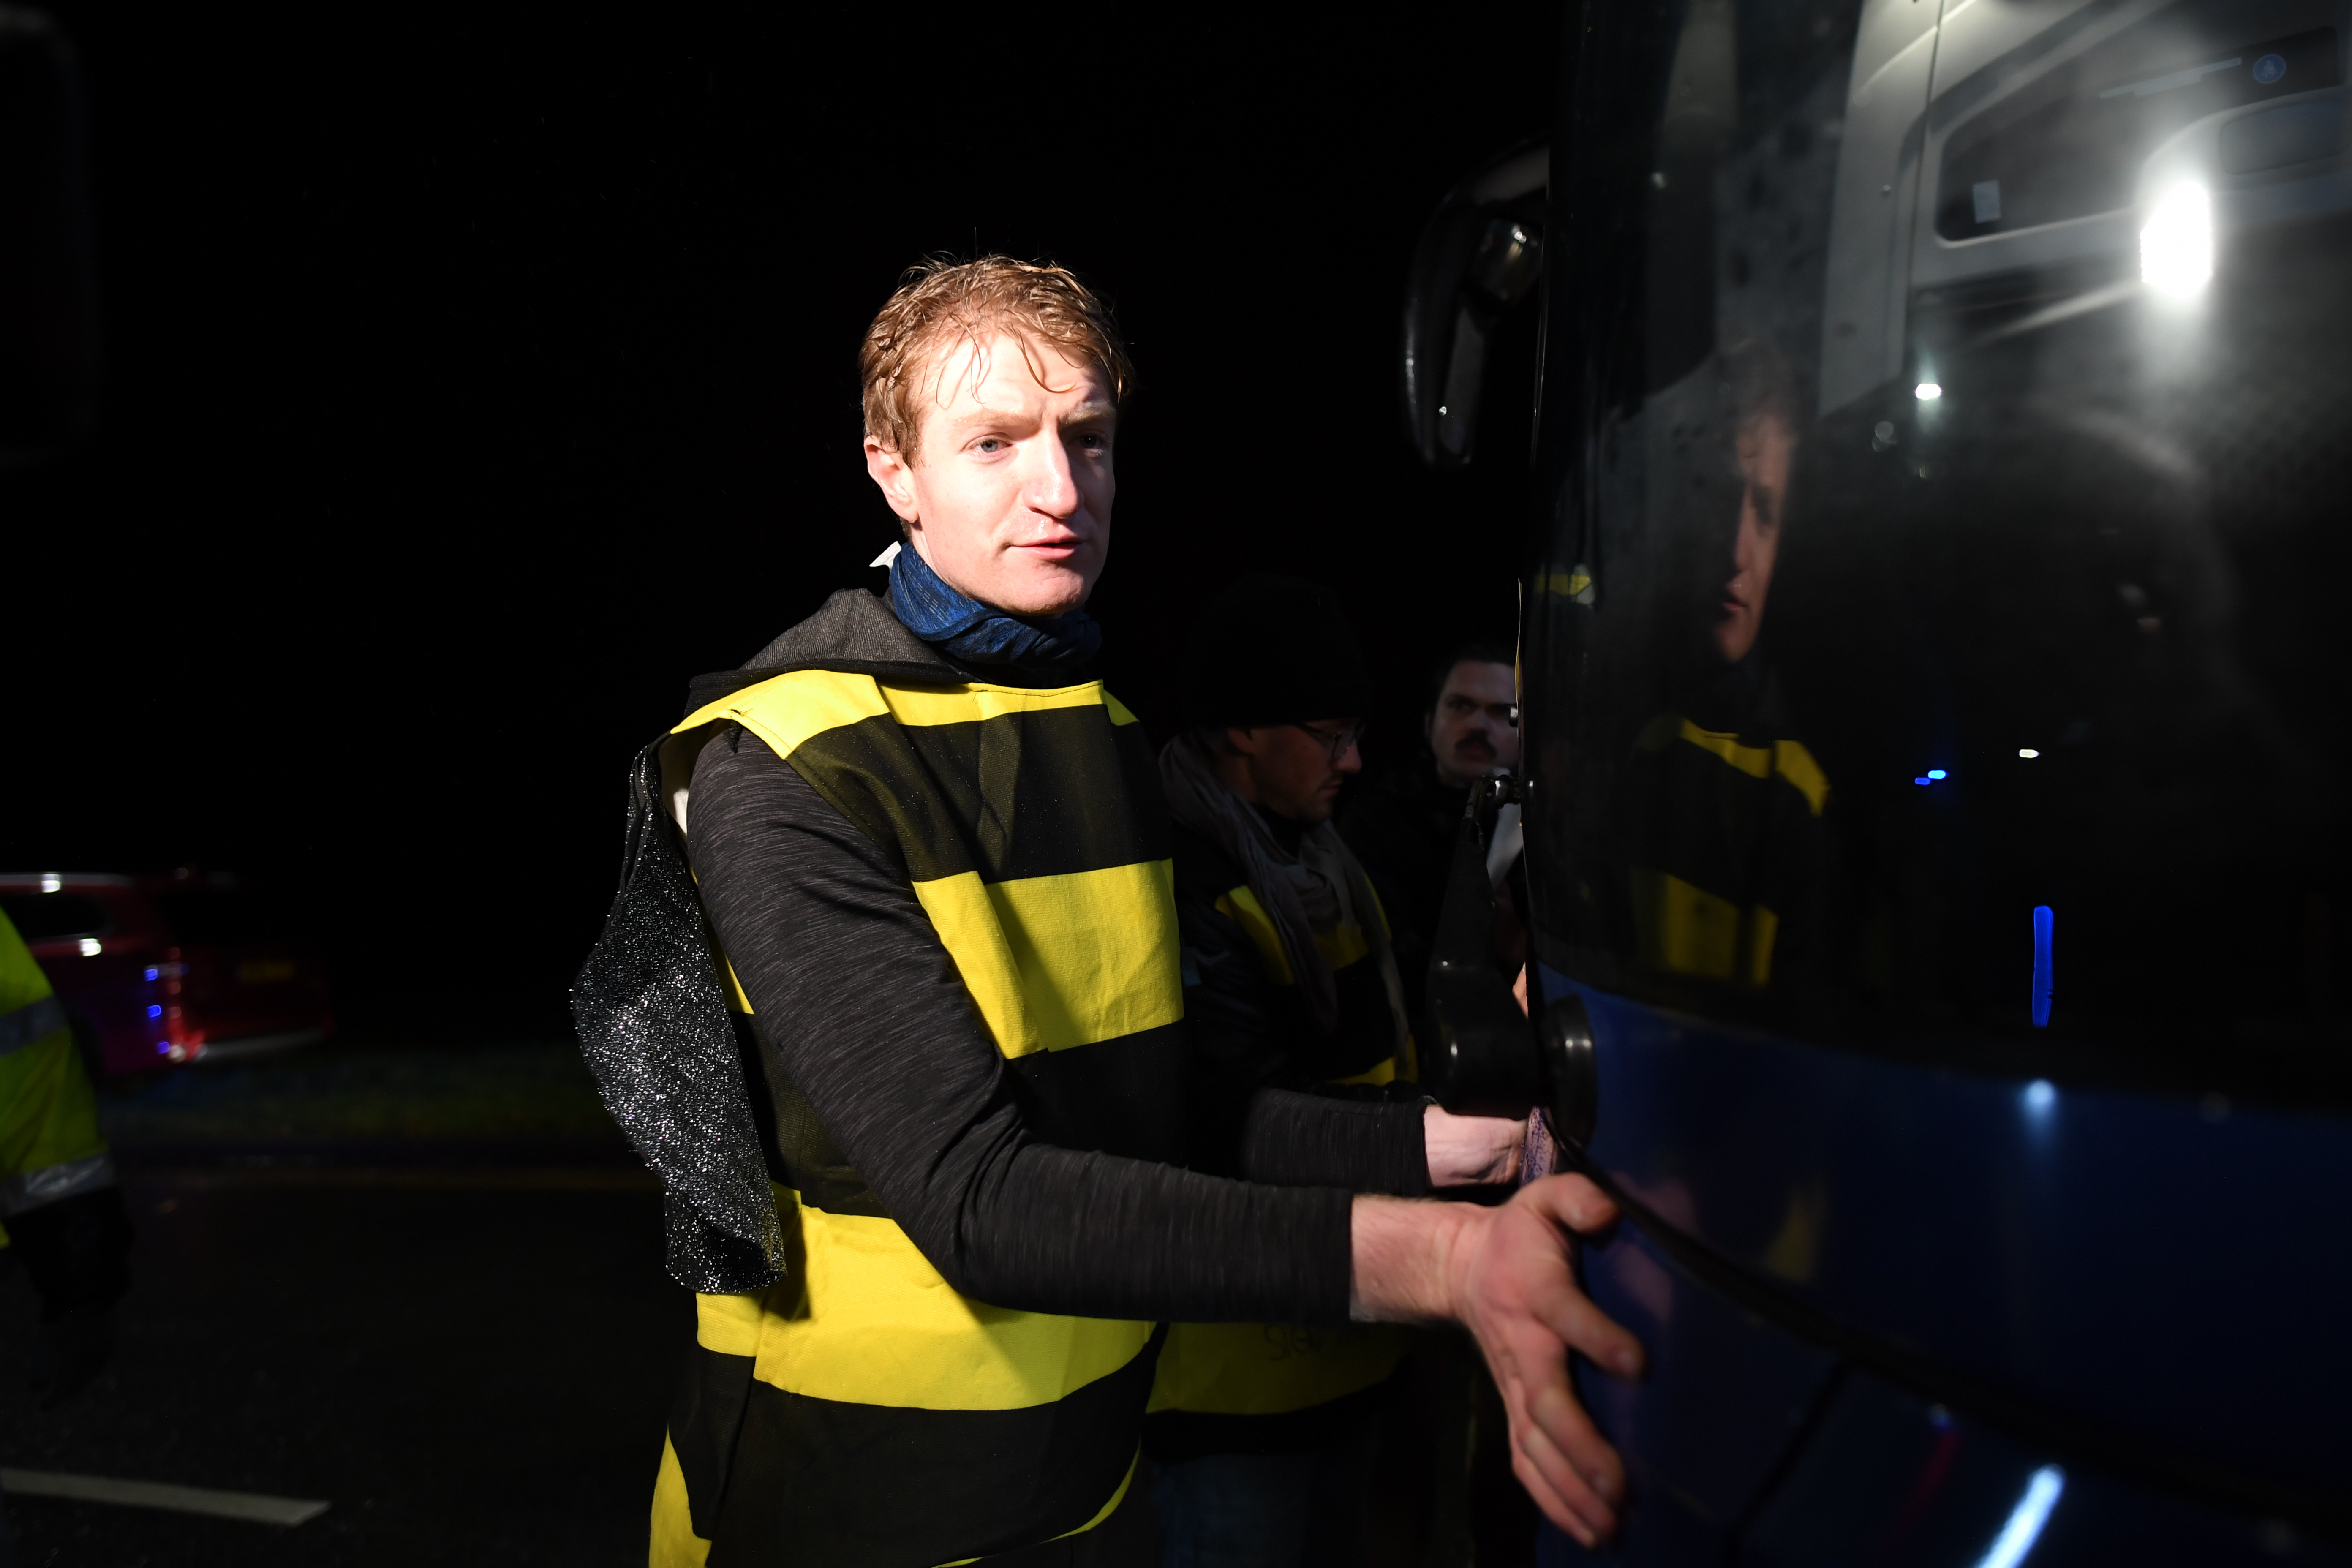 Extinction Rebellion protesters dressed as bees glue themselves to the Conservative Party campaign bus as Prime Minister Boris Johnson visits the JCB cab manufacturing centre in Uttoxeter, while on the General Election campaign trail.